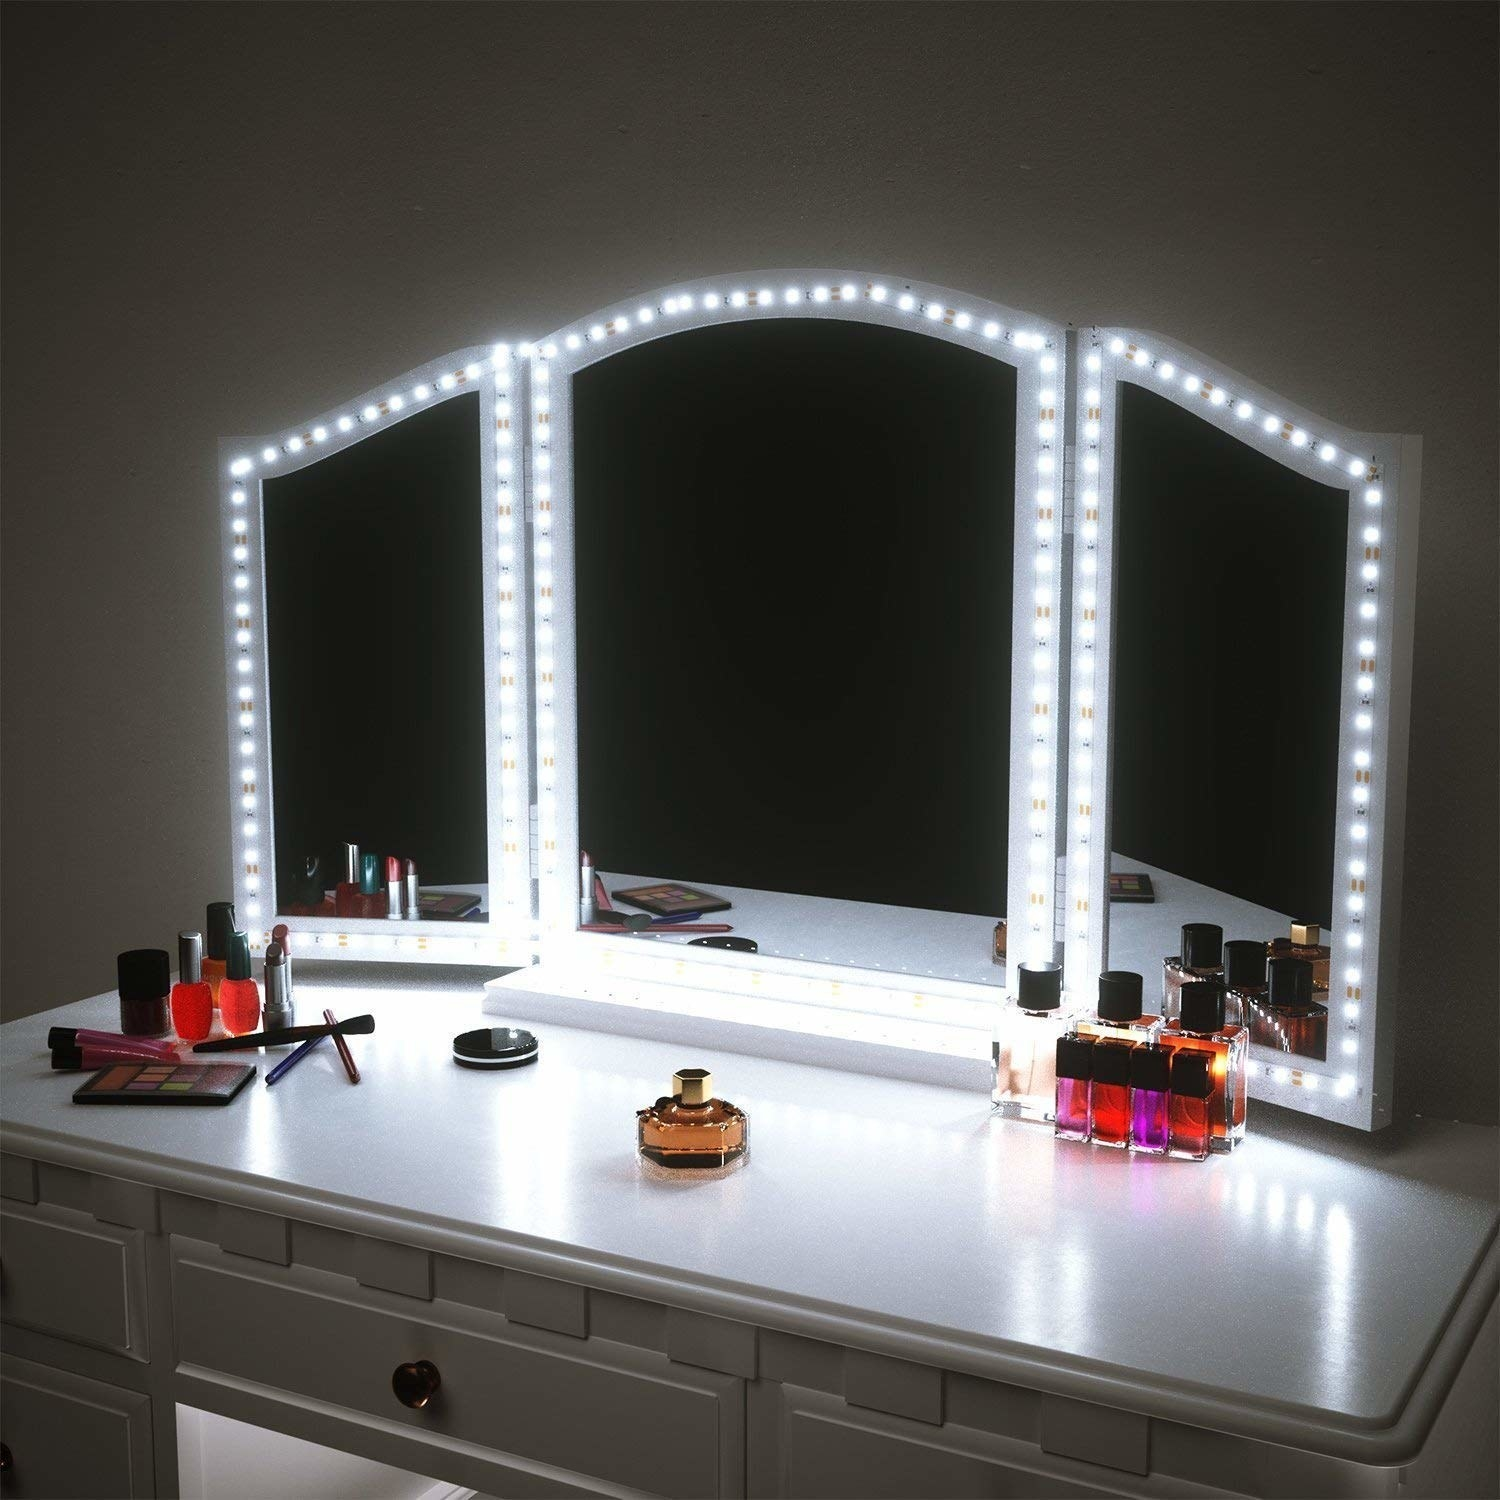 Vanity with a three-section mirror, each with a ring of lights around the outside, illuminating it